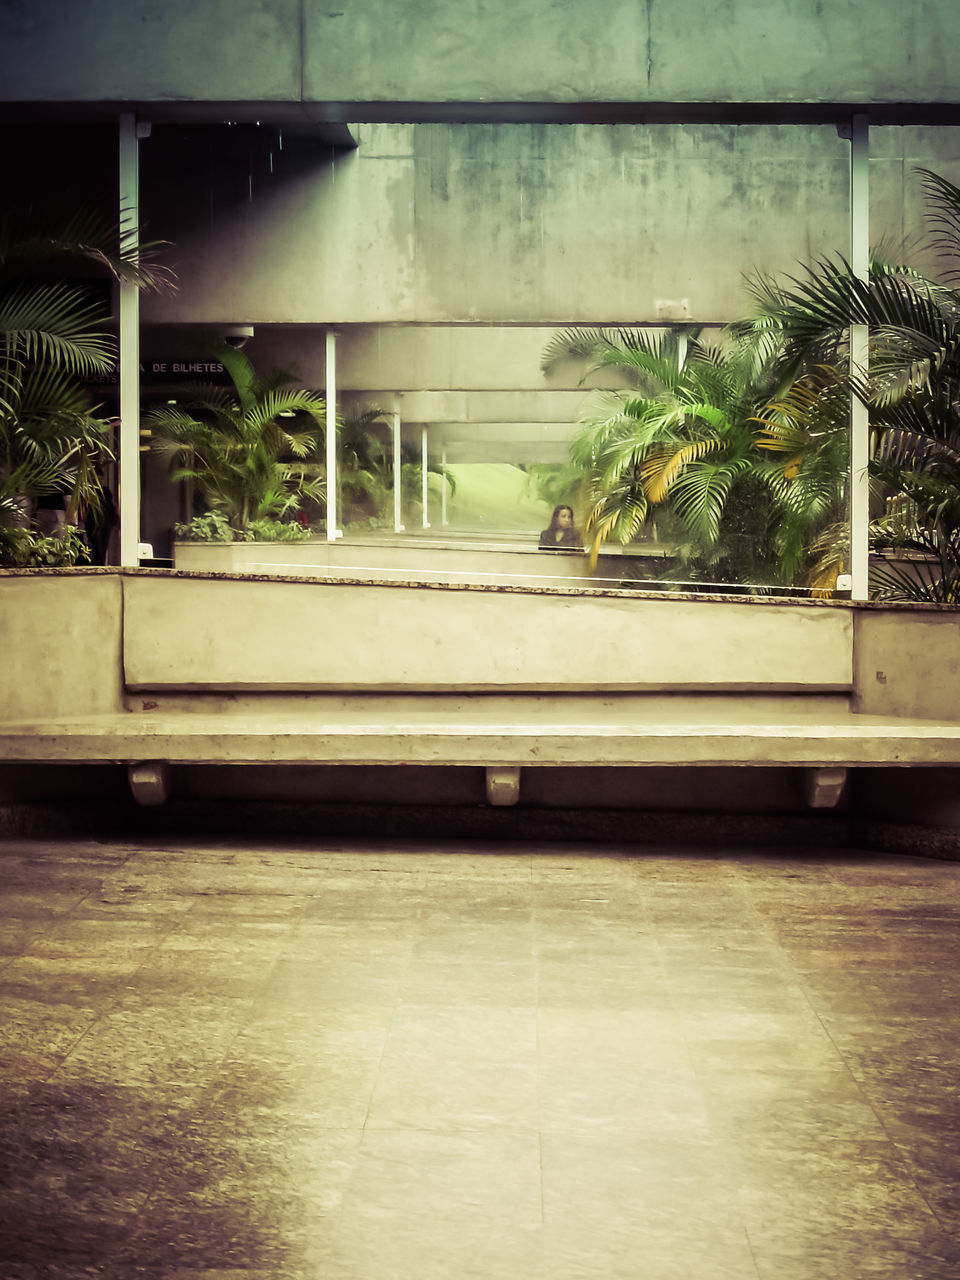 no people, window, day, indoors, palm tree, tree, architecture, nature, close-up